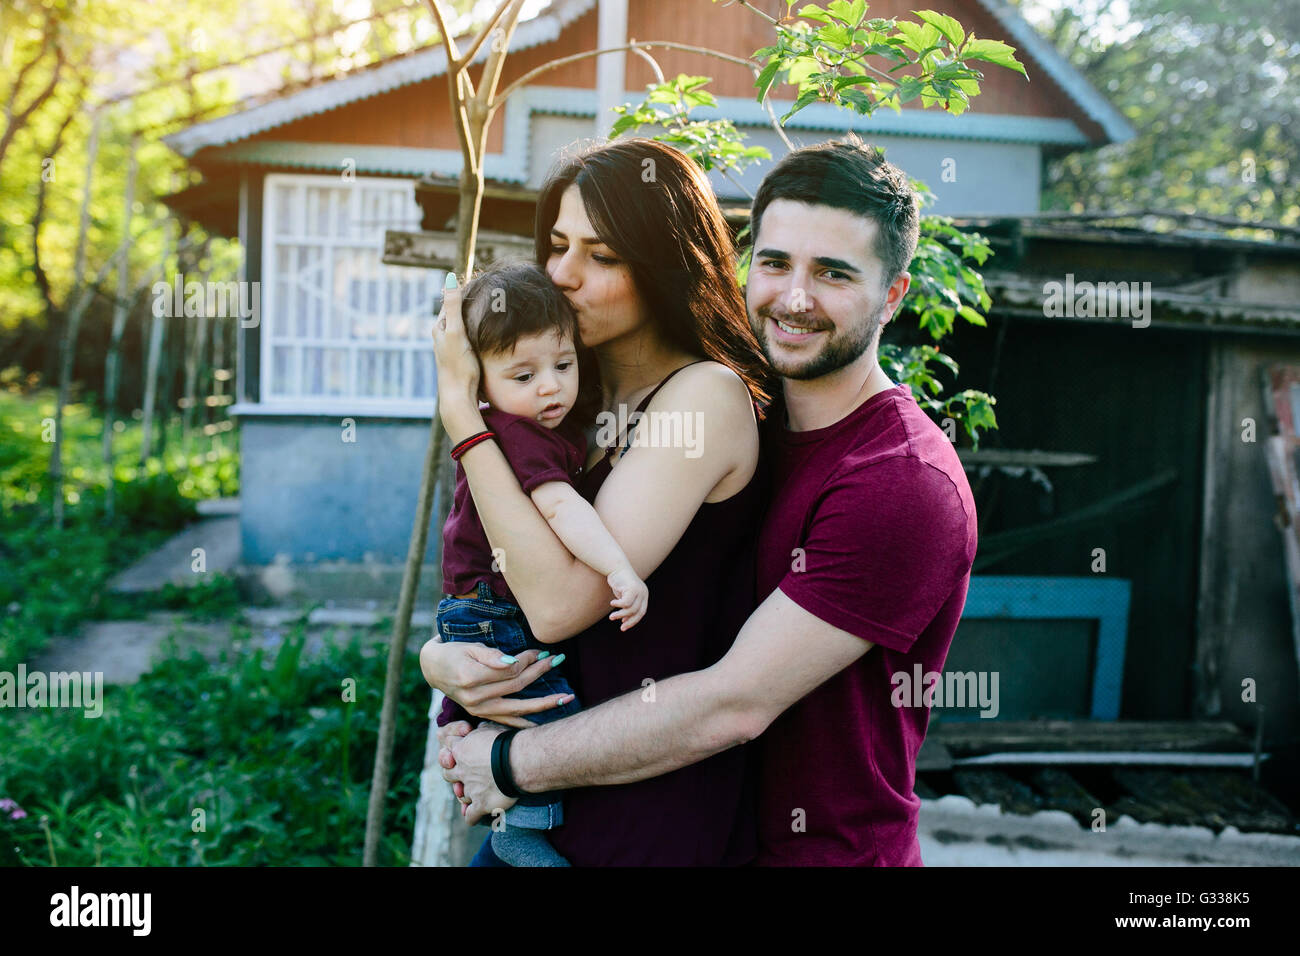 young family with a child on the nature - Stock Image